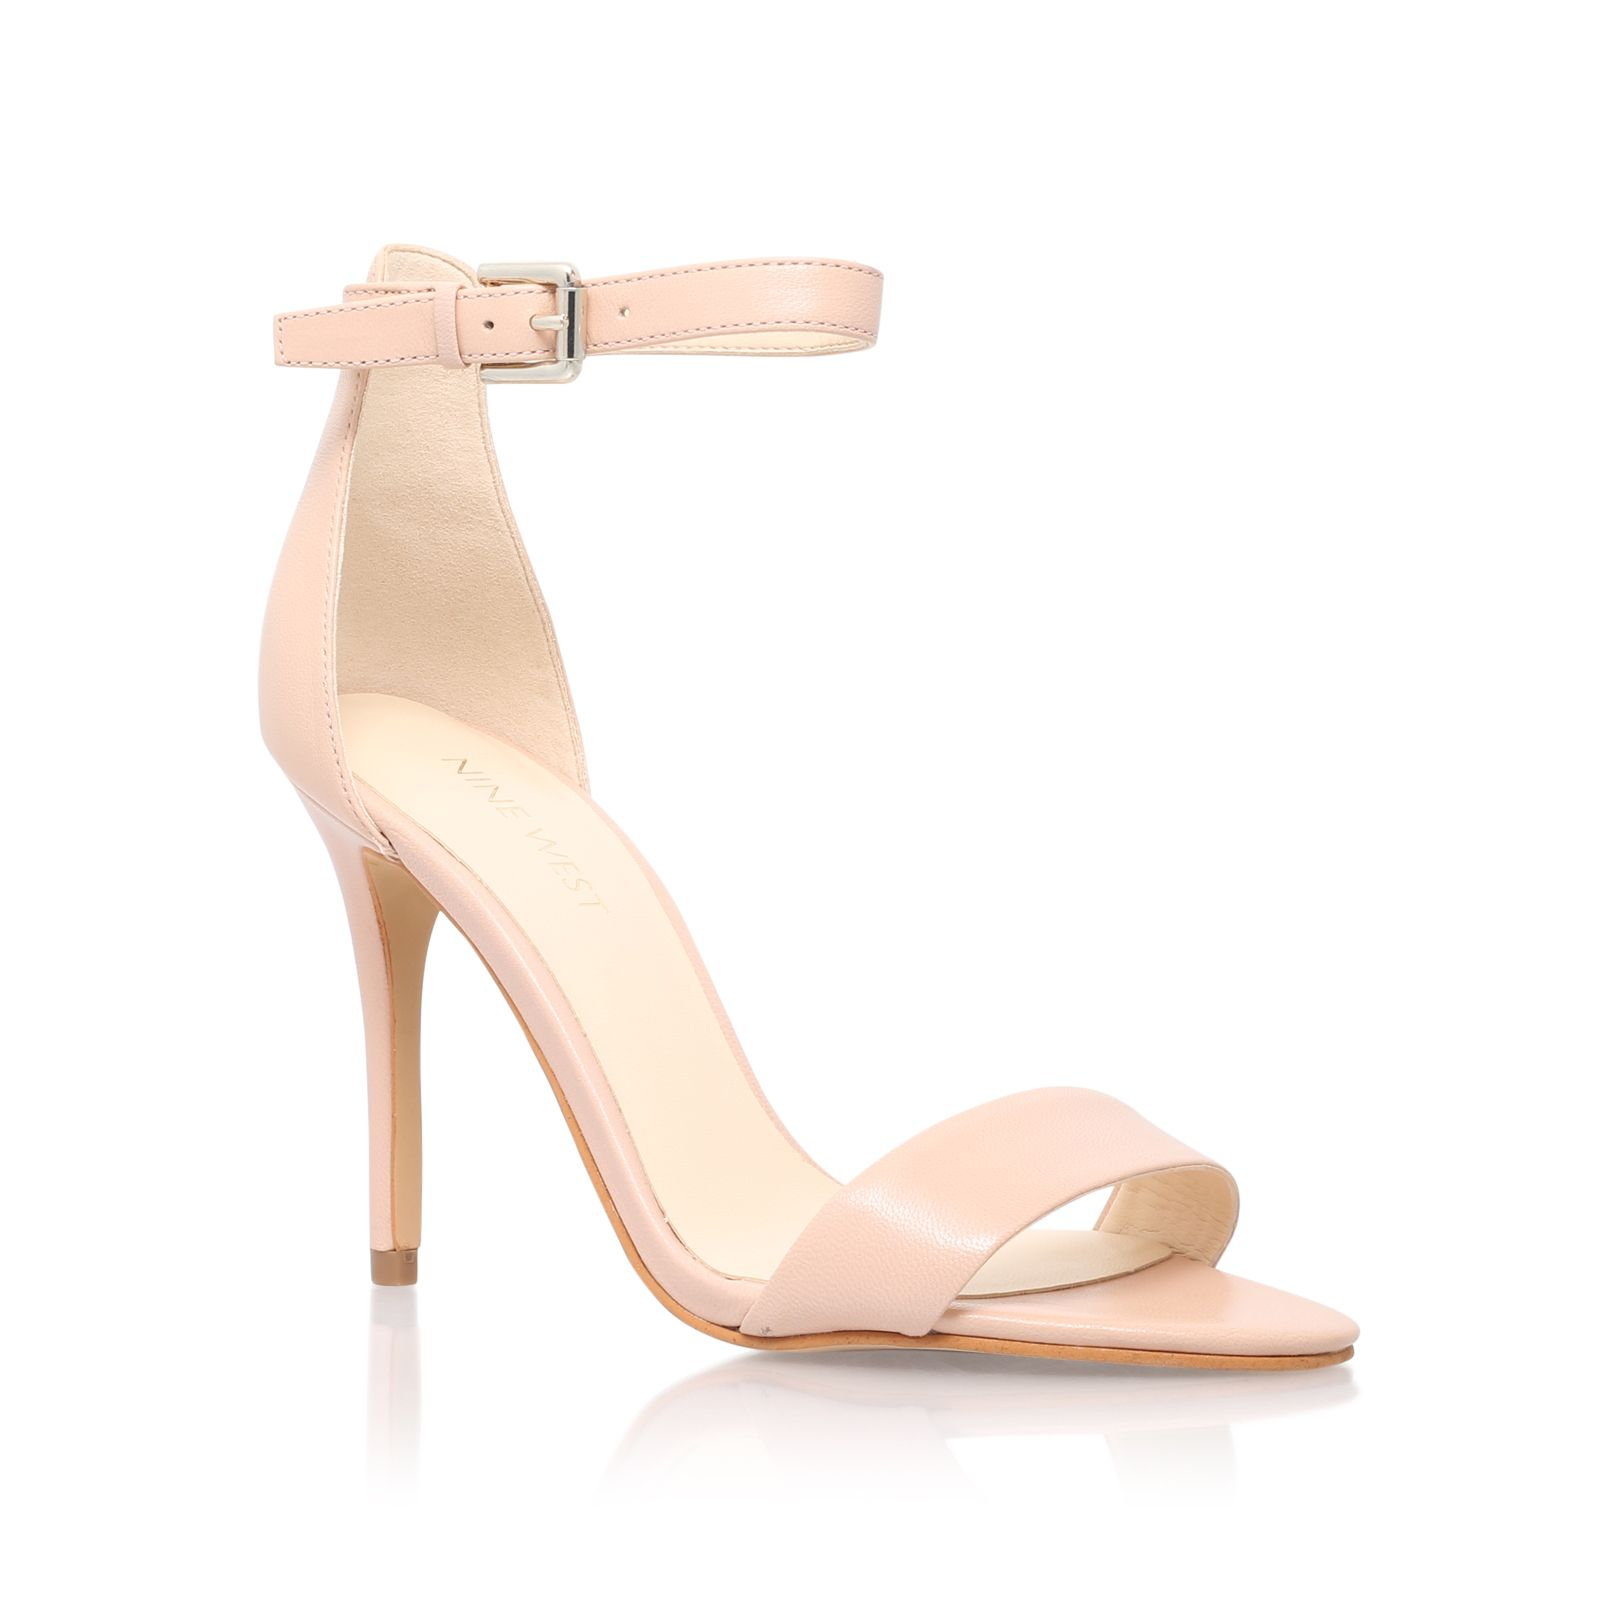 Nine West Nine West Mana high heel sandals, Nude